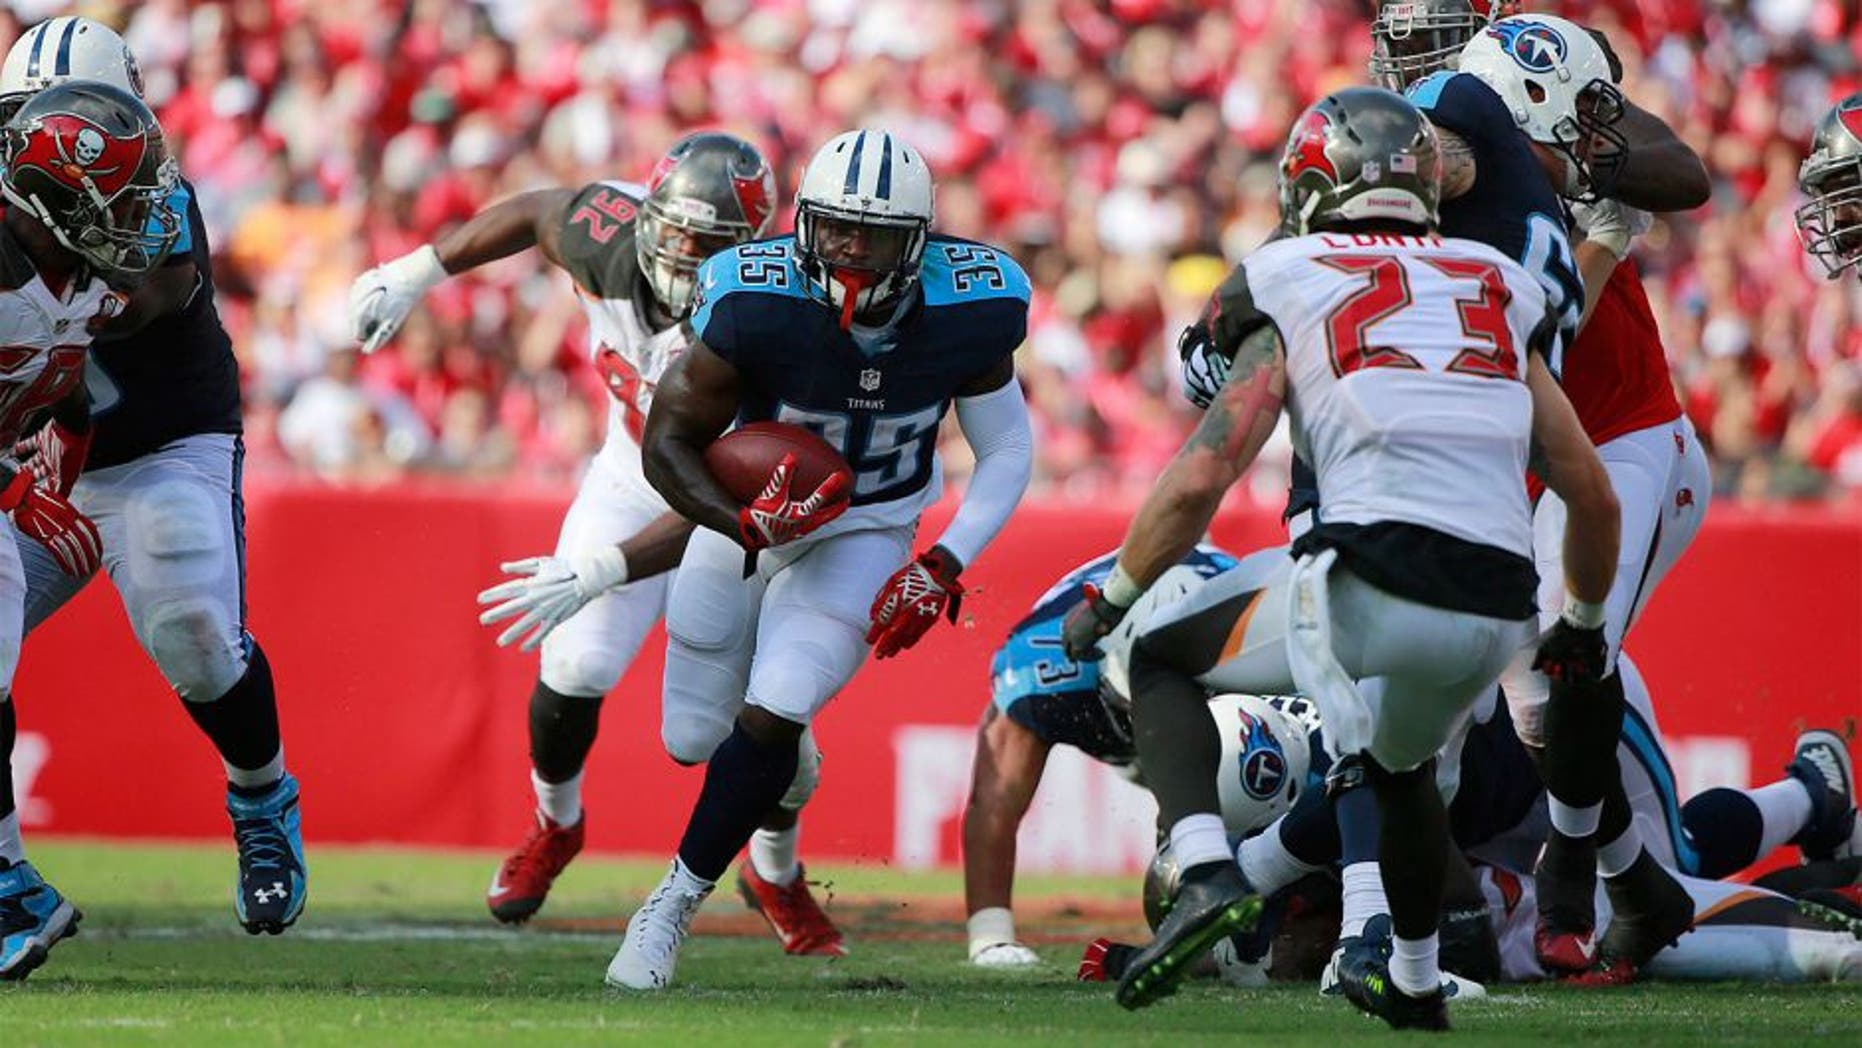 Sep 13, 2015; Tampa, FL, USA; Tennessee Titans running back Terrance West (35) runs with the ball against the Tampa Bay Buccaneers during the first half at Raymond James Stadium. Mandatory Credit: Kim Klement-USA TODAY Sports